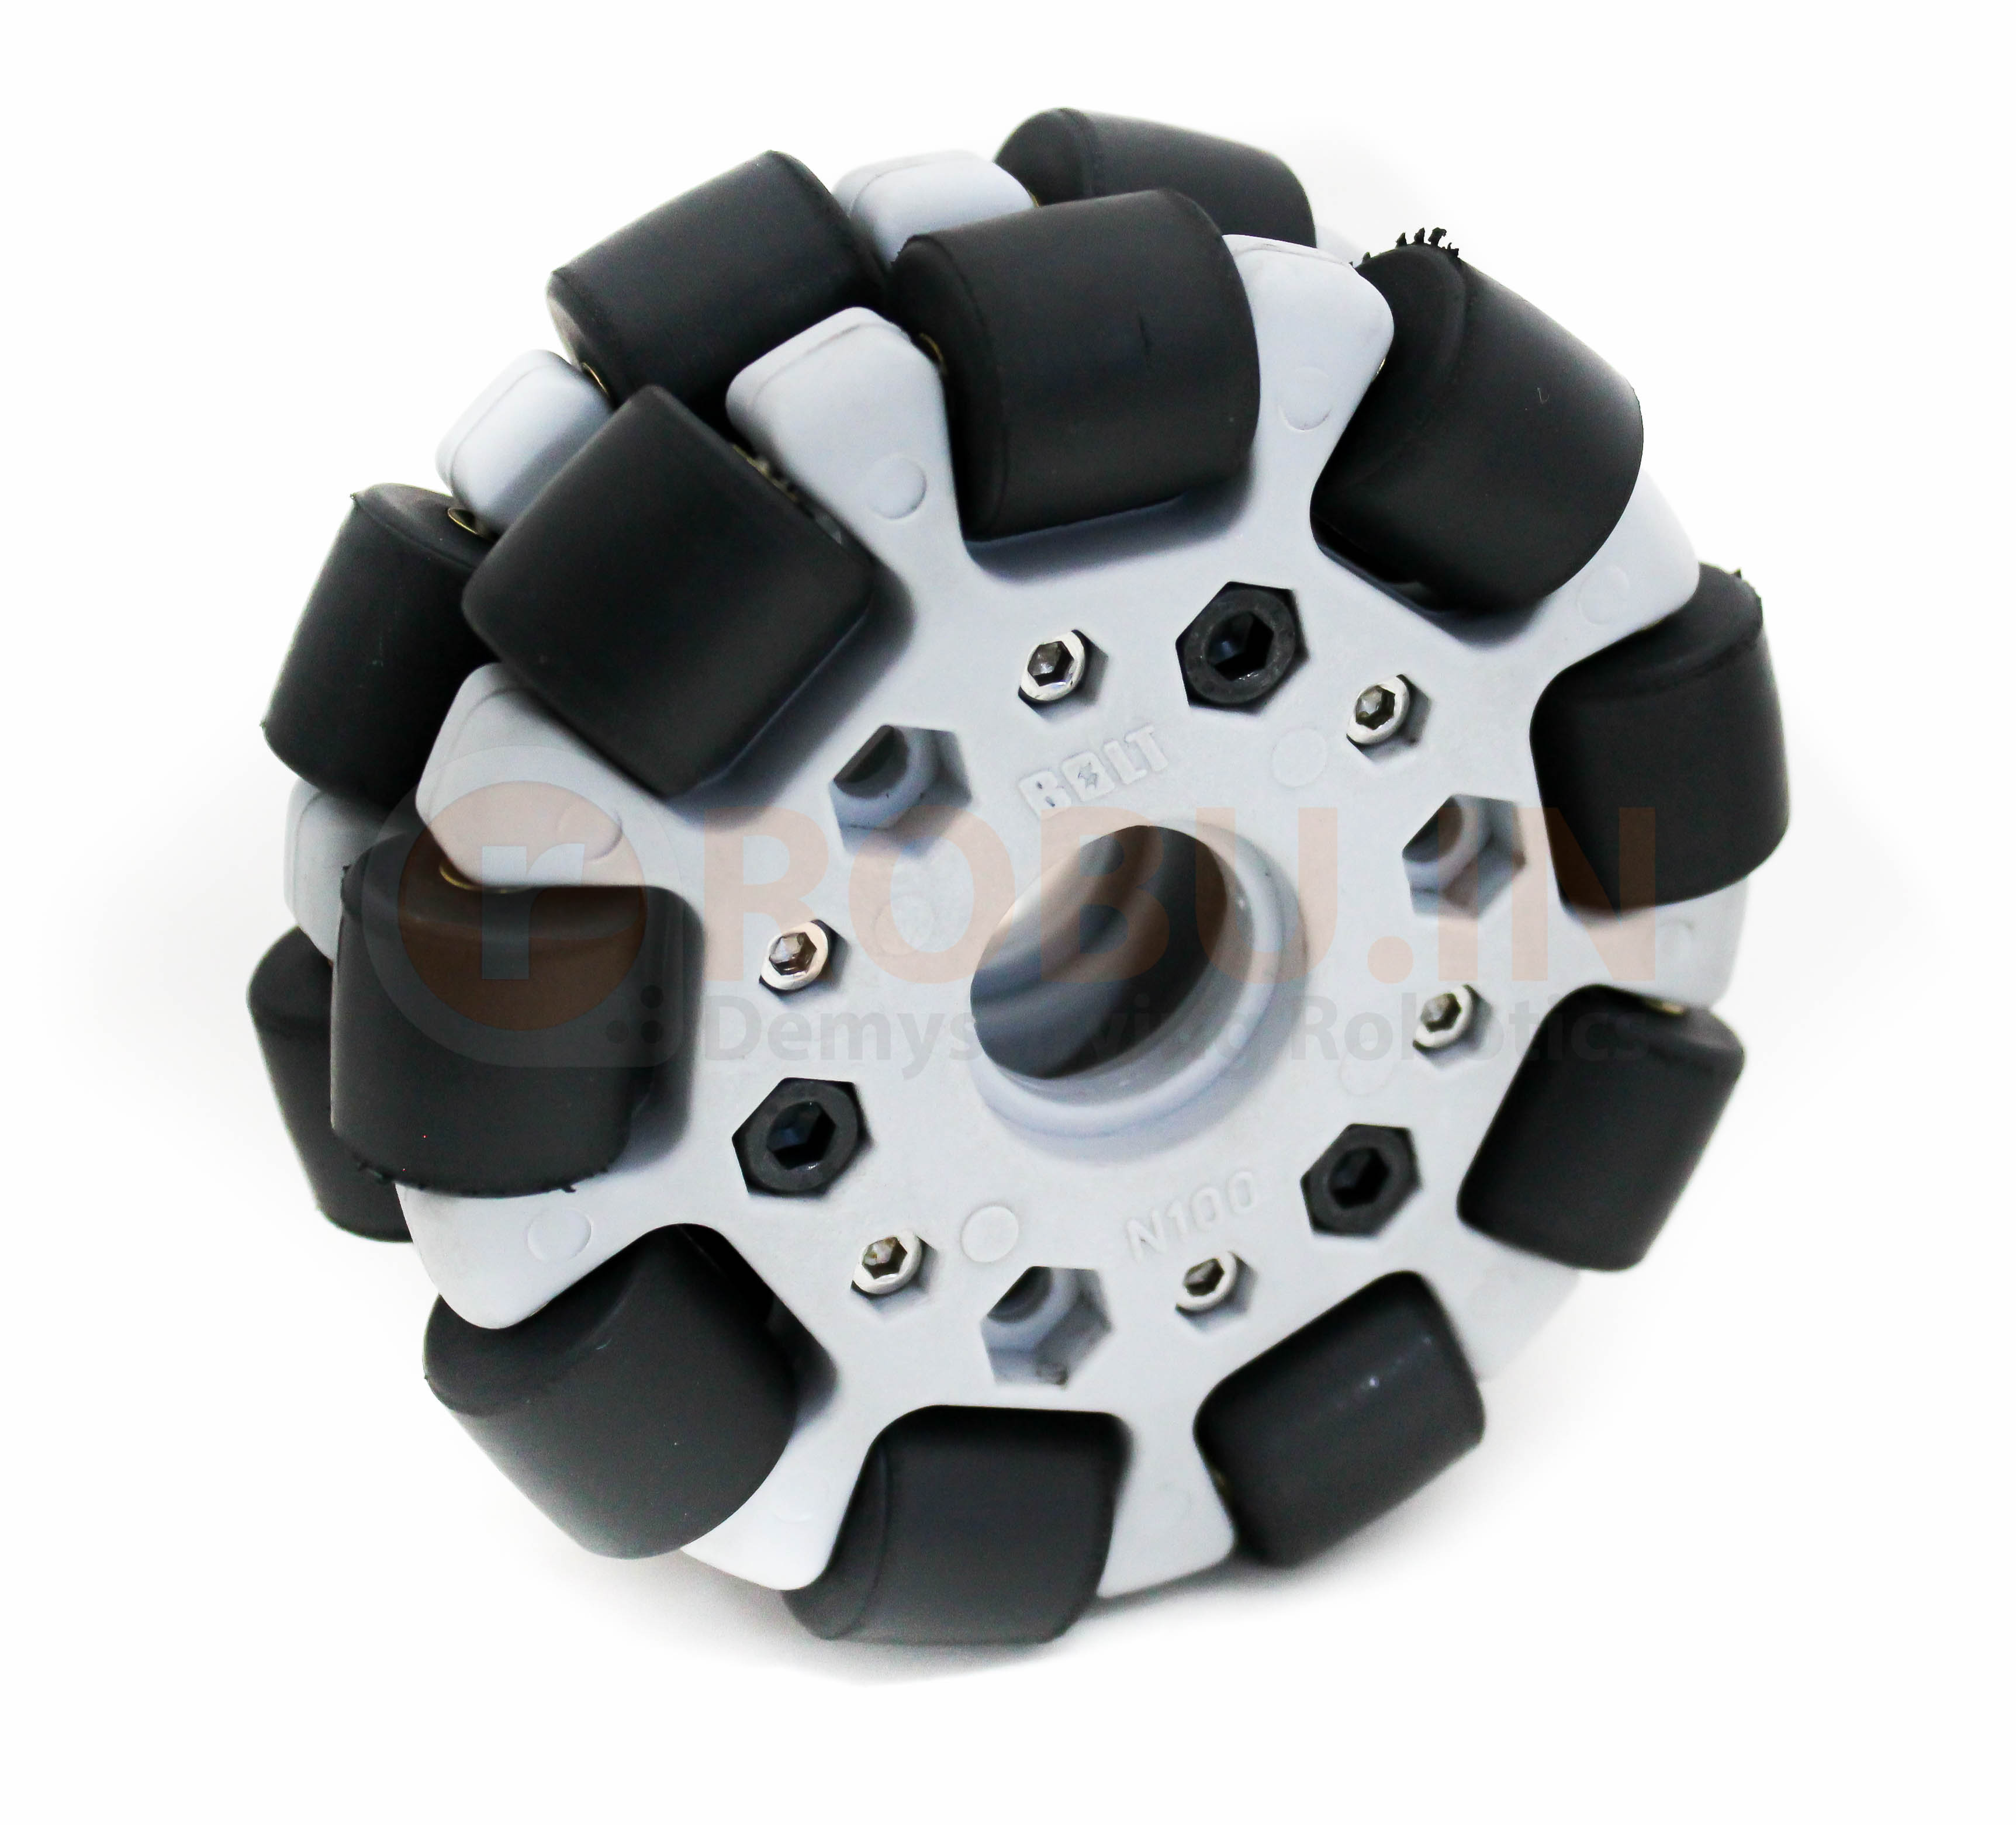 EasyMech 100mm Double Glass Fiber Omni Wheel with bearing rollers Grey High Quality